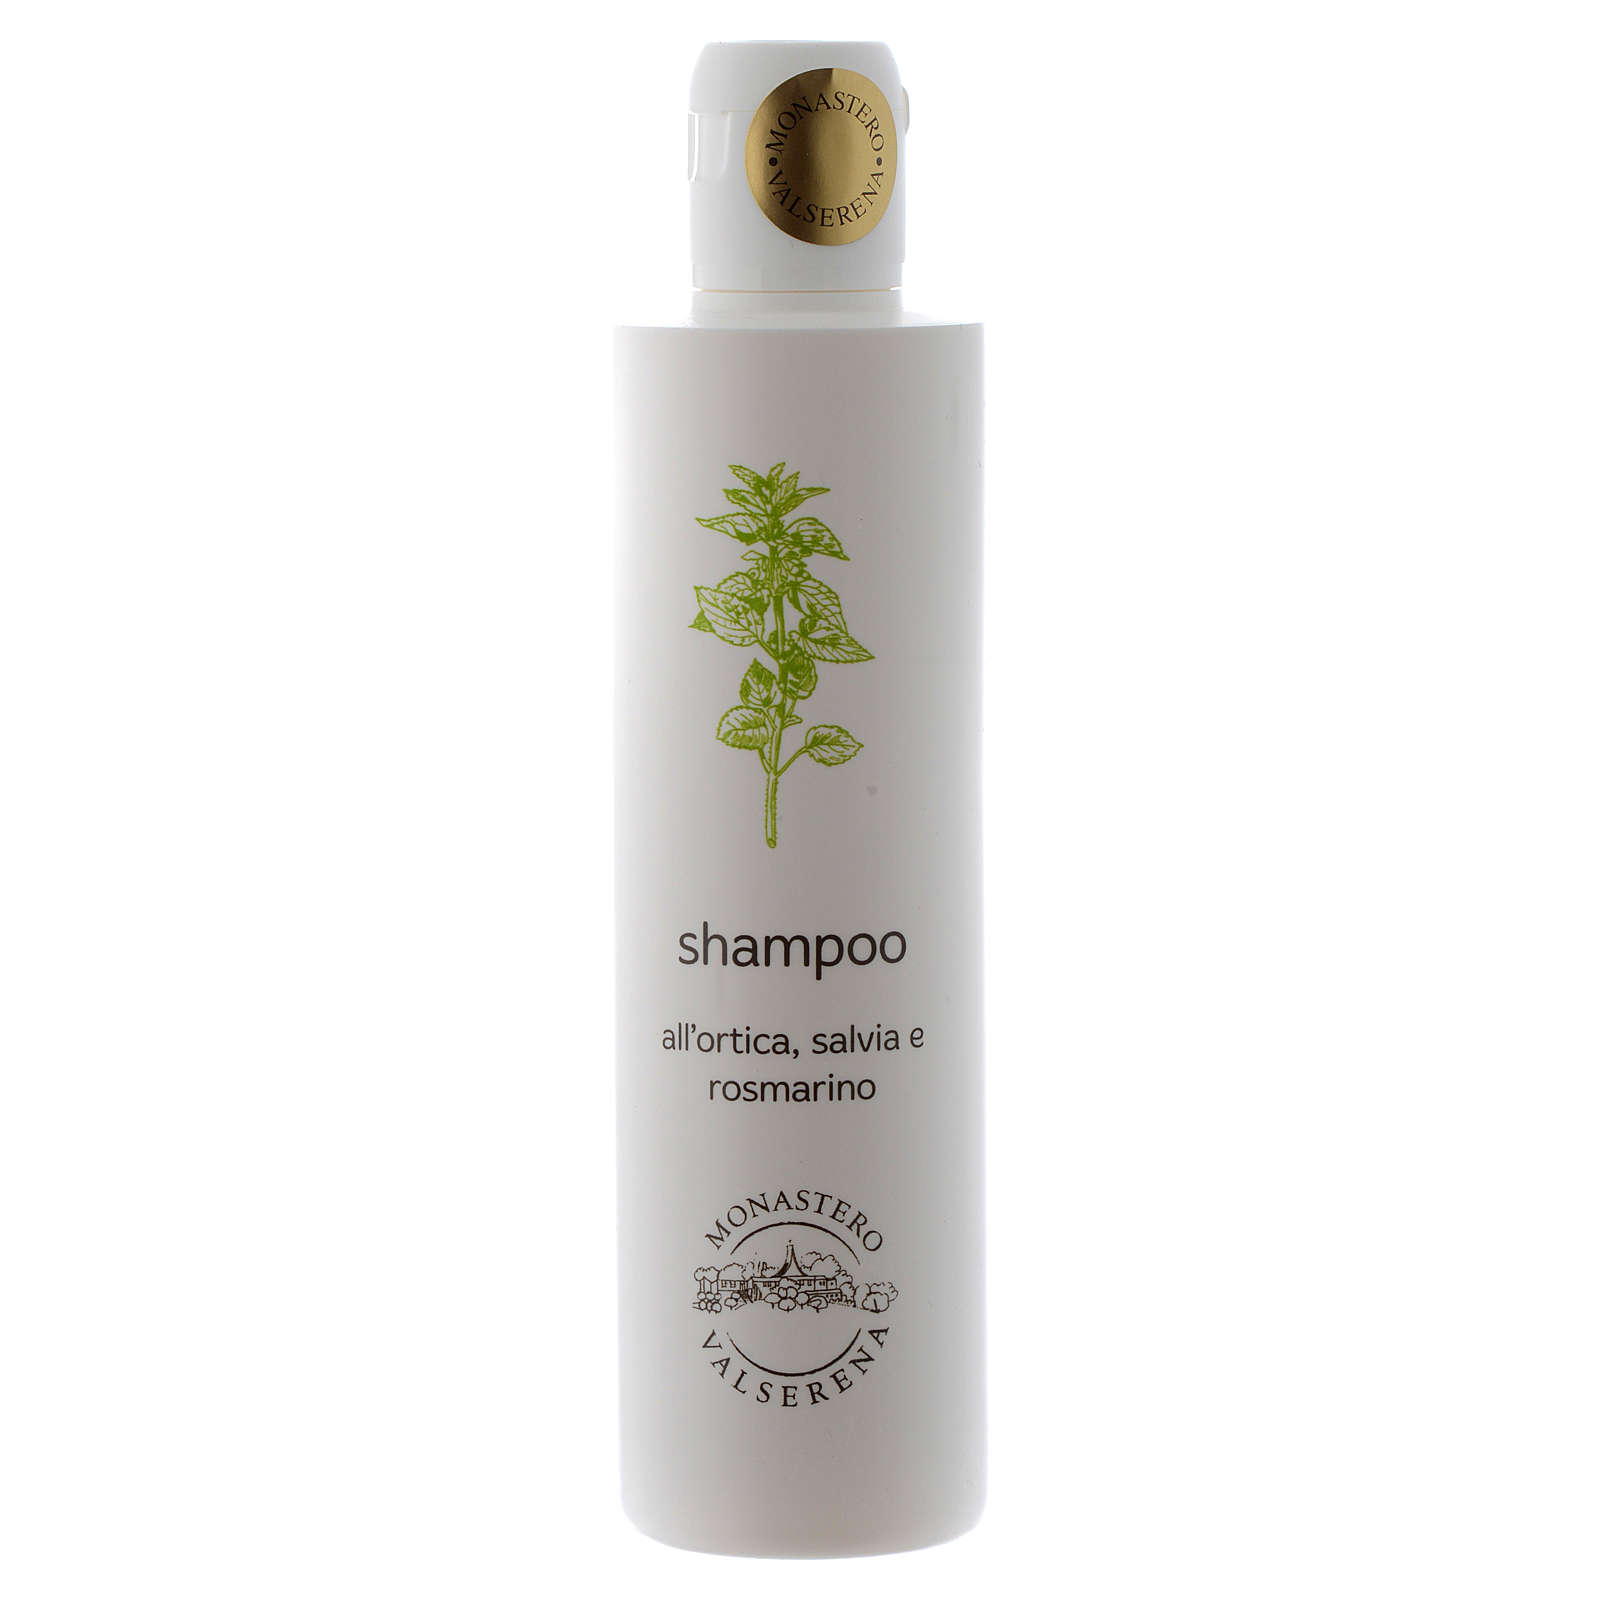 Nettle Sage Rosemary shampoo 250ml 4